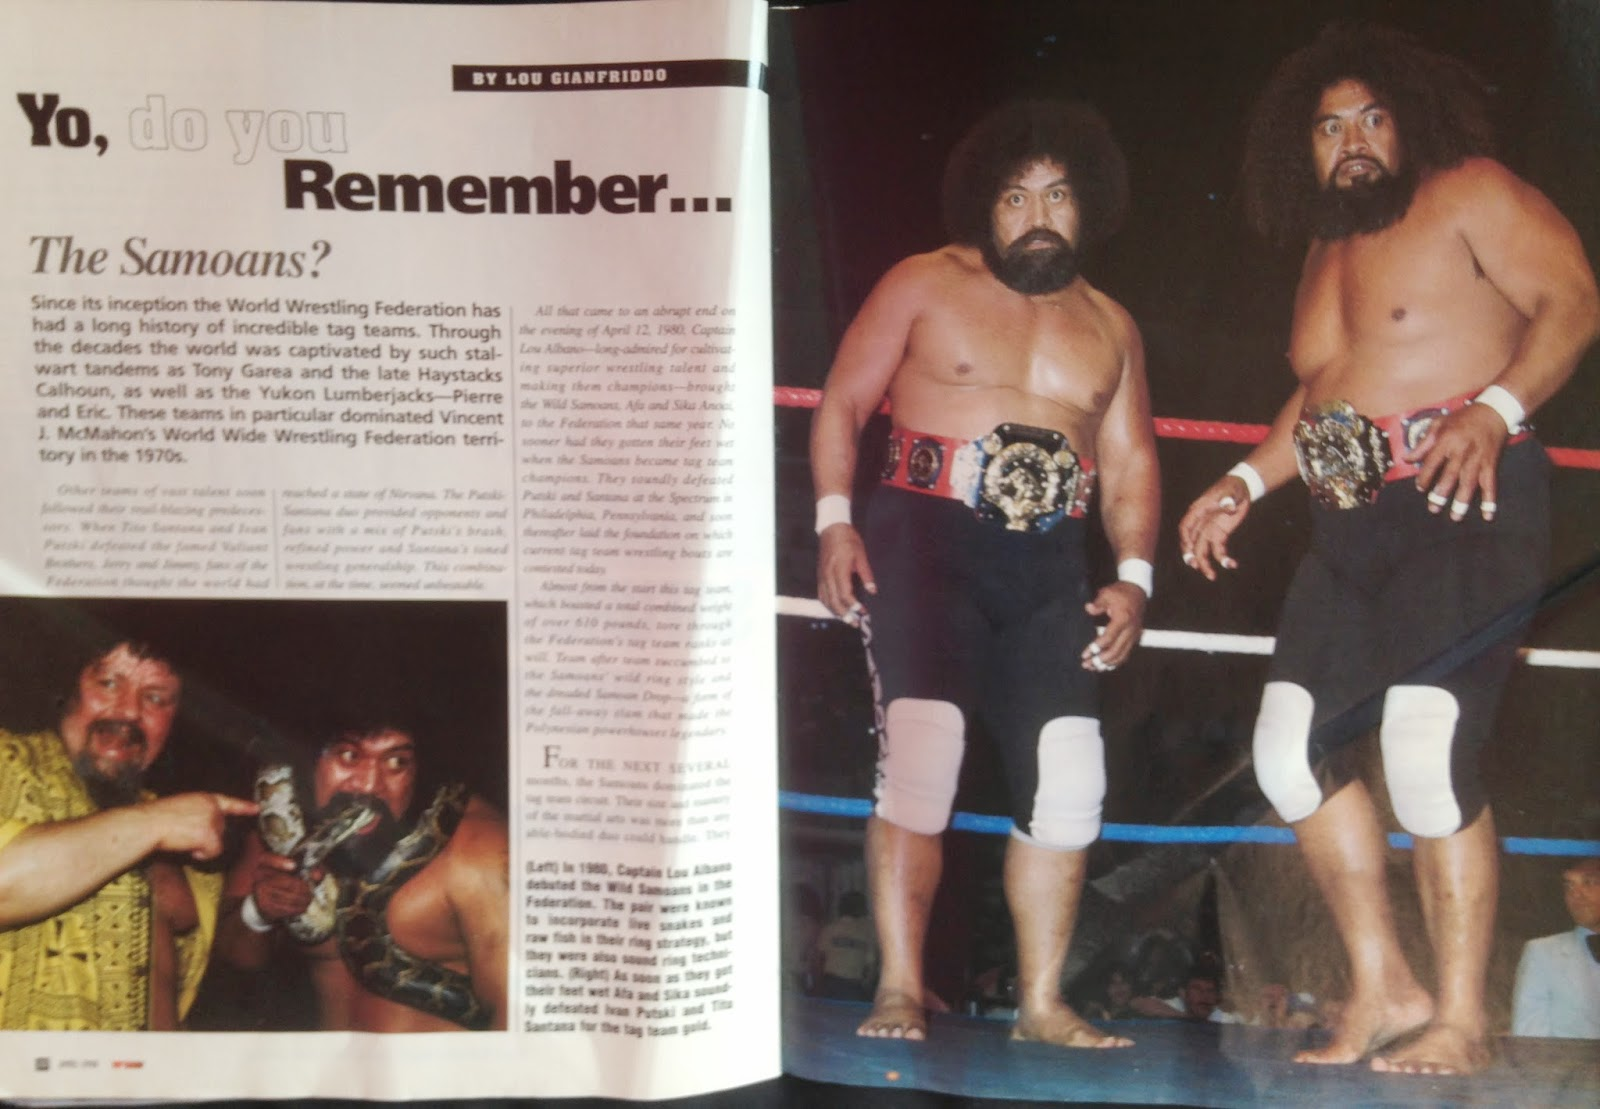 WWE - WWF Raw Magazine - April 1998 - Remembering The Samoans